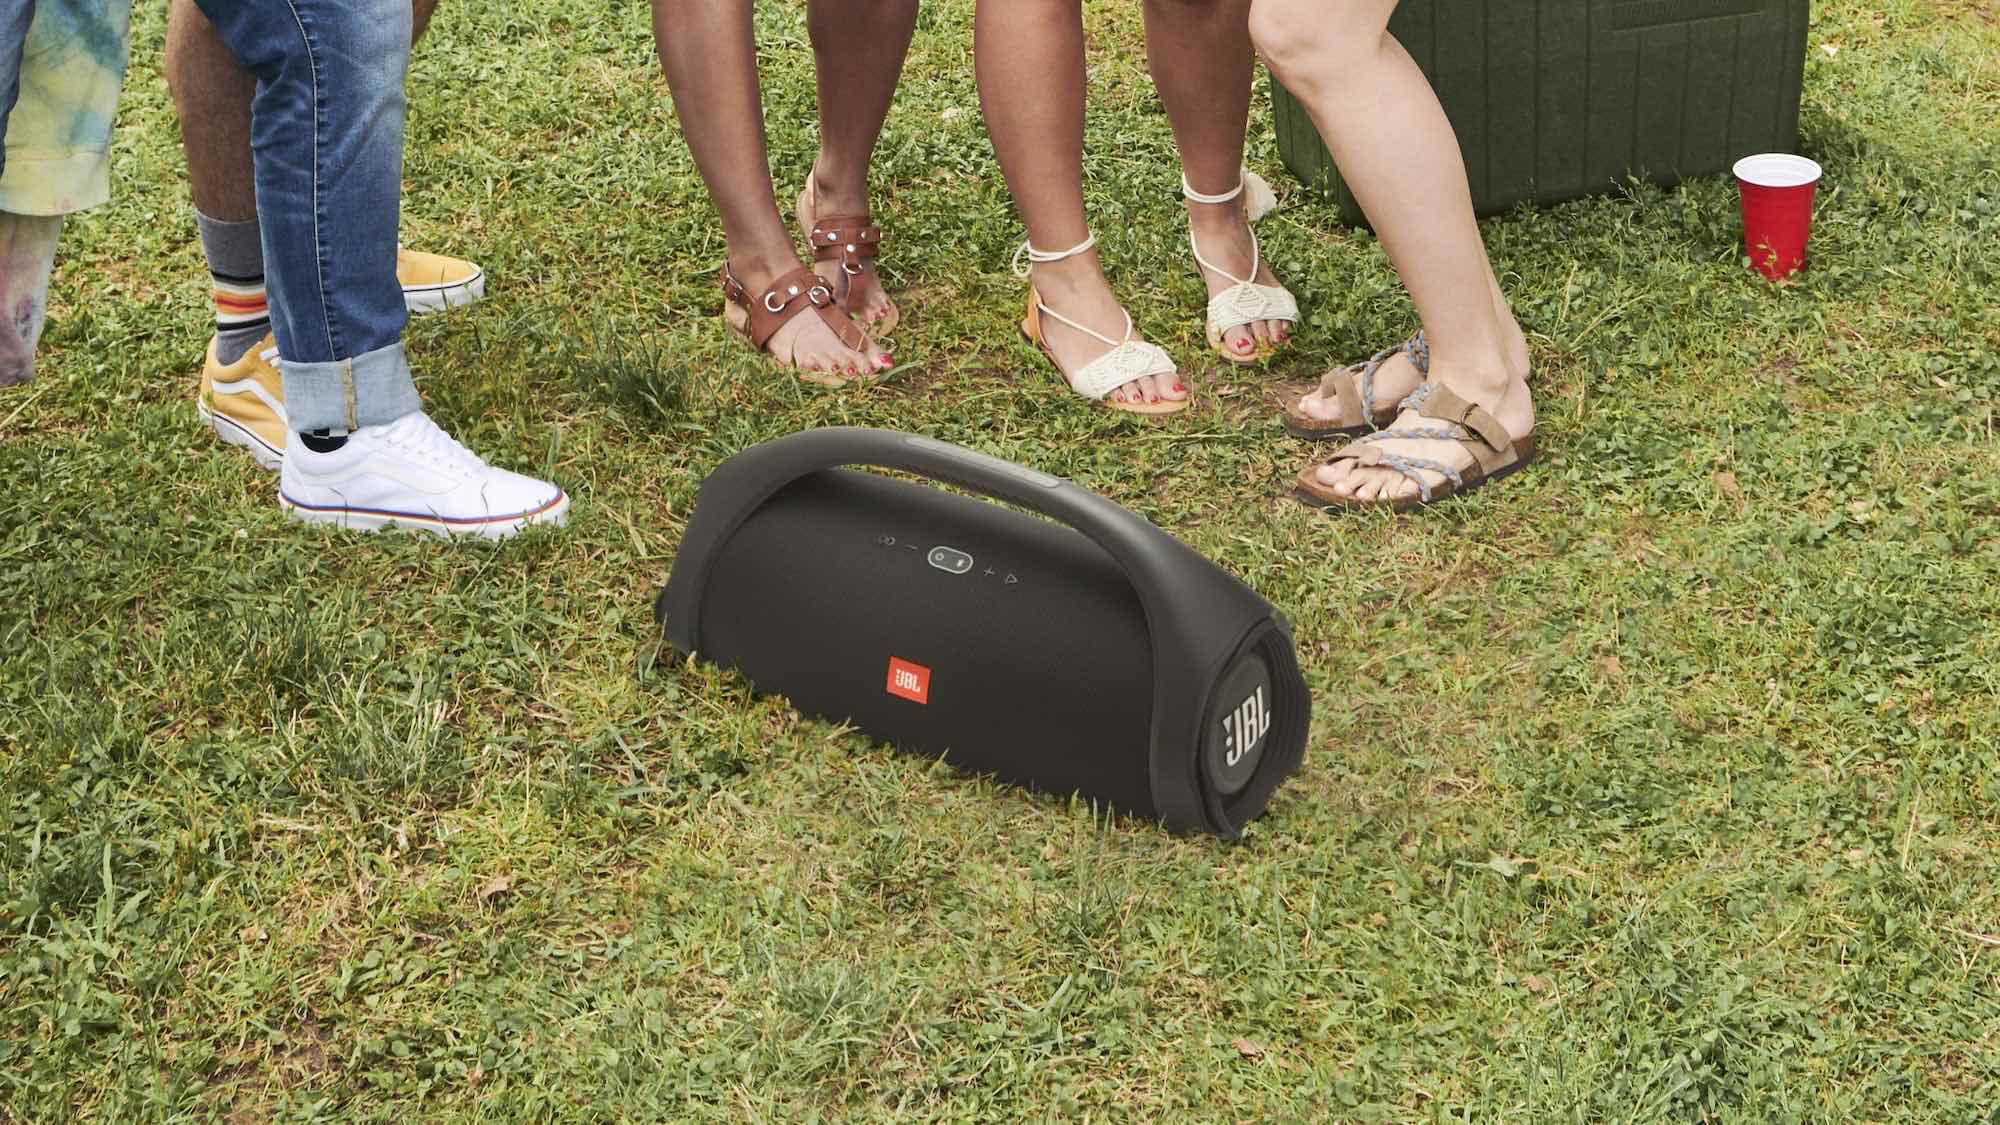 JBL Boombox 2 Powerful Portable Bluetooth Speaker